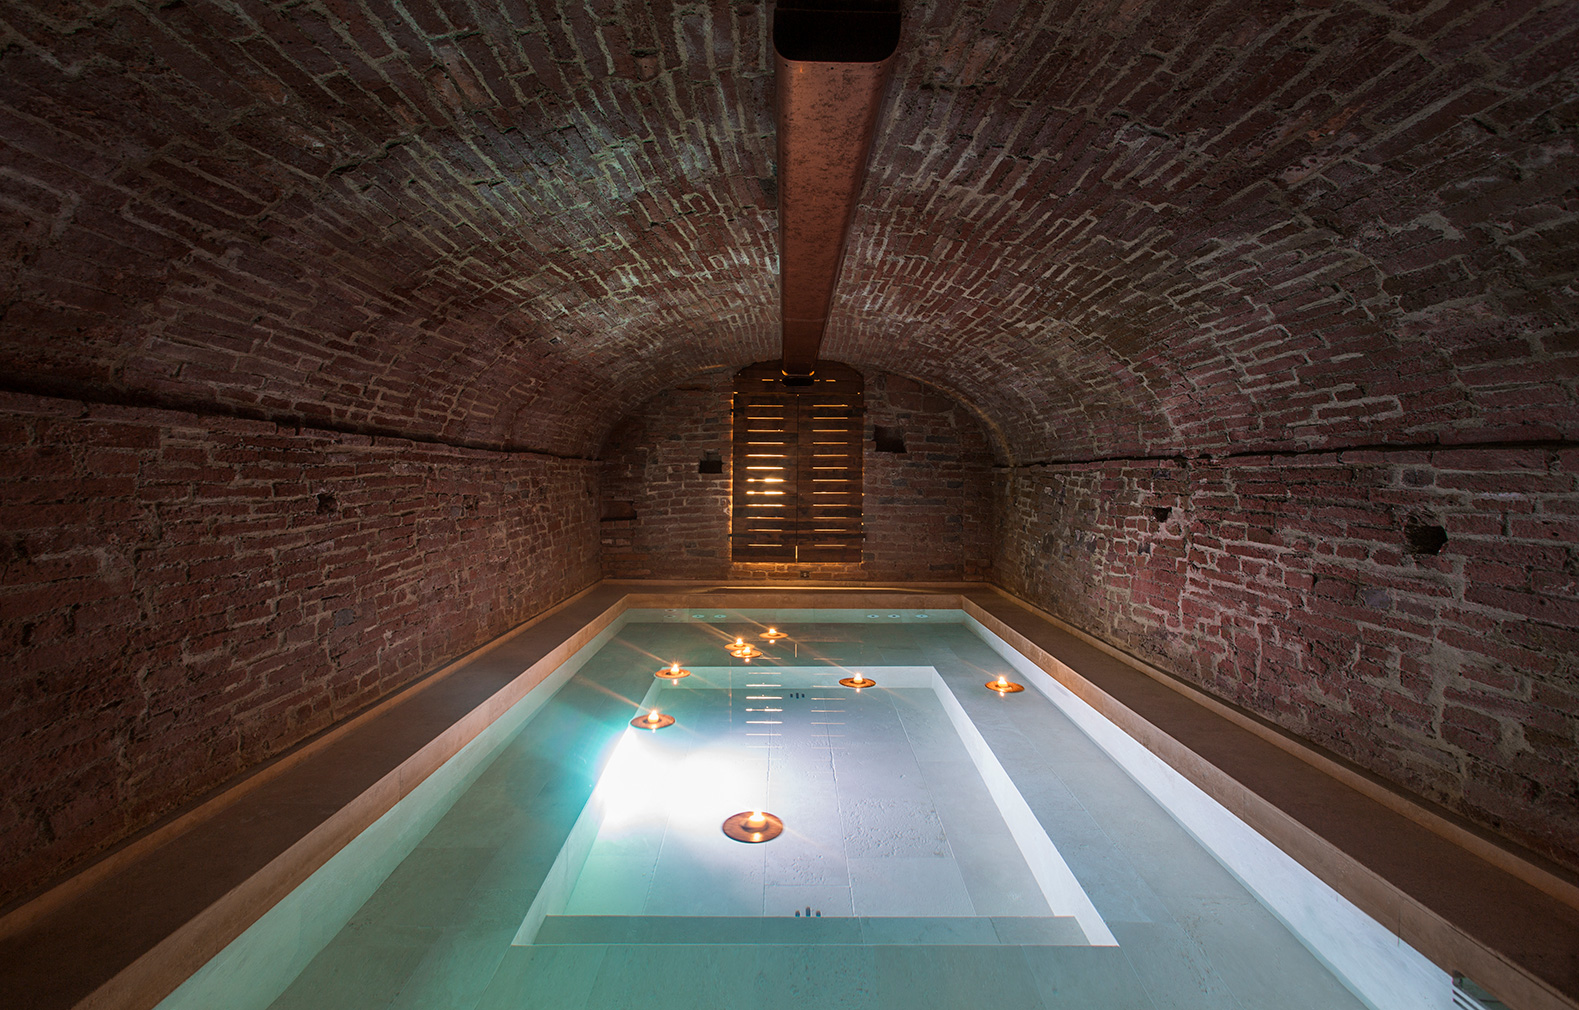 A plunge pool is hidden in a vaulted cellar beneath the loft